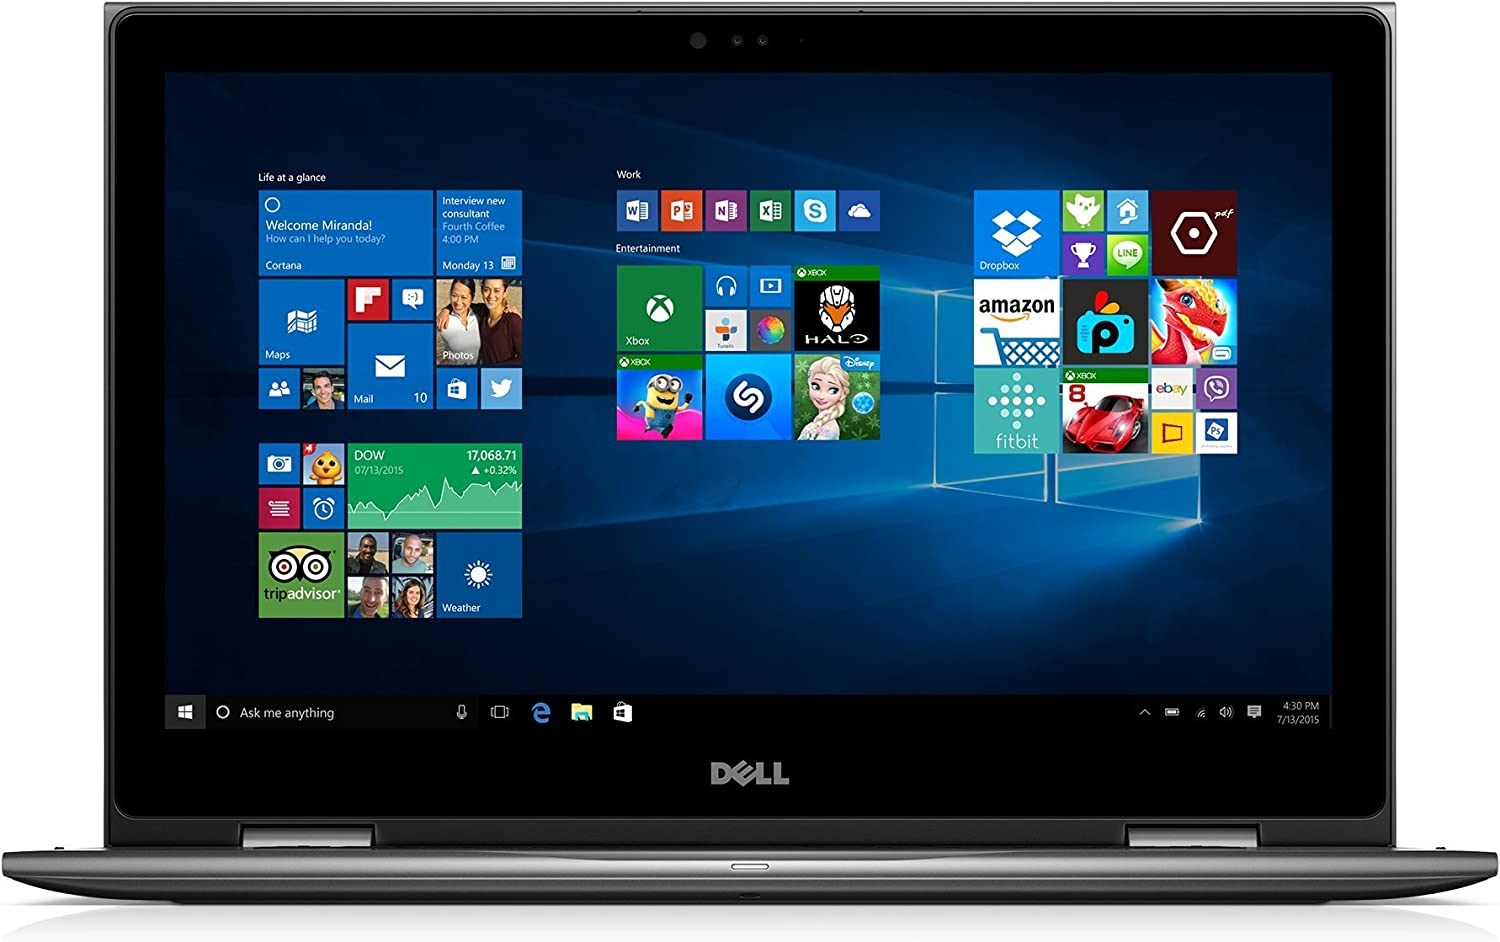 Dell Inspiron i5578-2550GRY 15.6in FHD 2-In-1 Laptop (7th Generation Intel Core i7, 8GB, 1TB HDD) (Renewed)